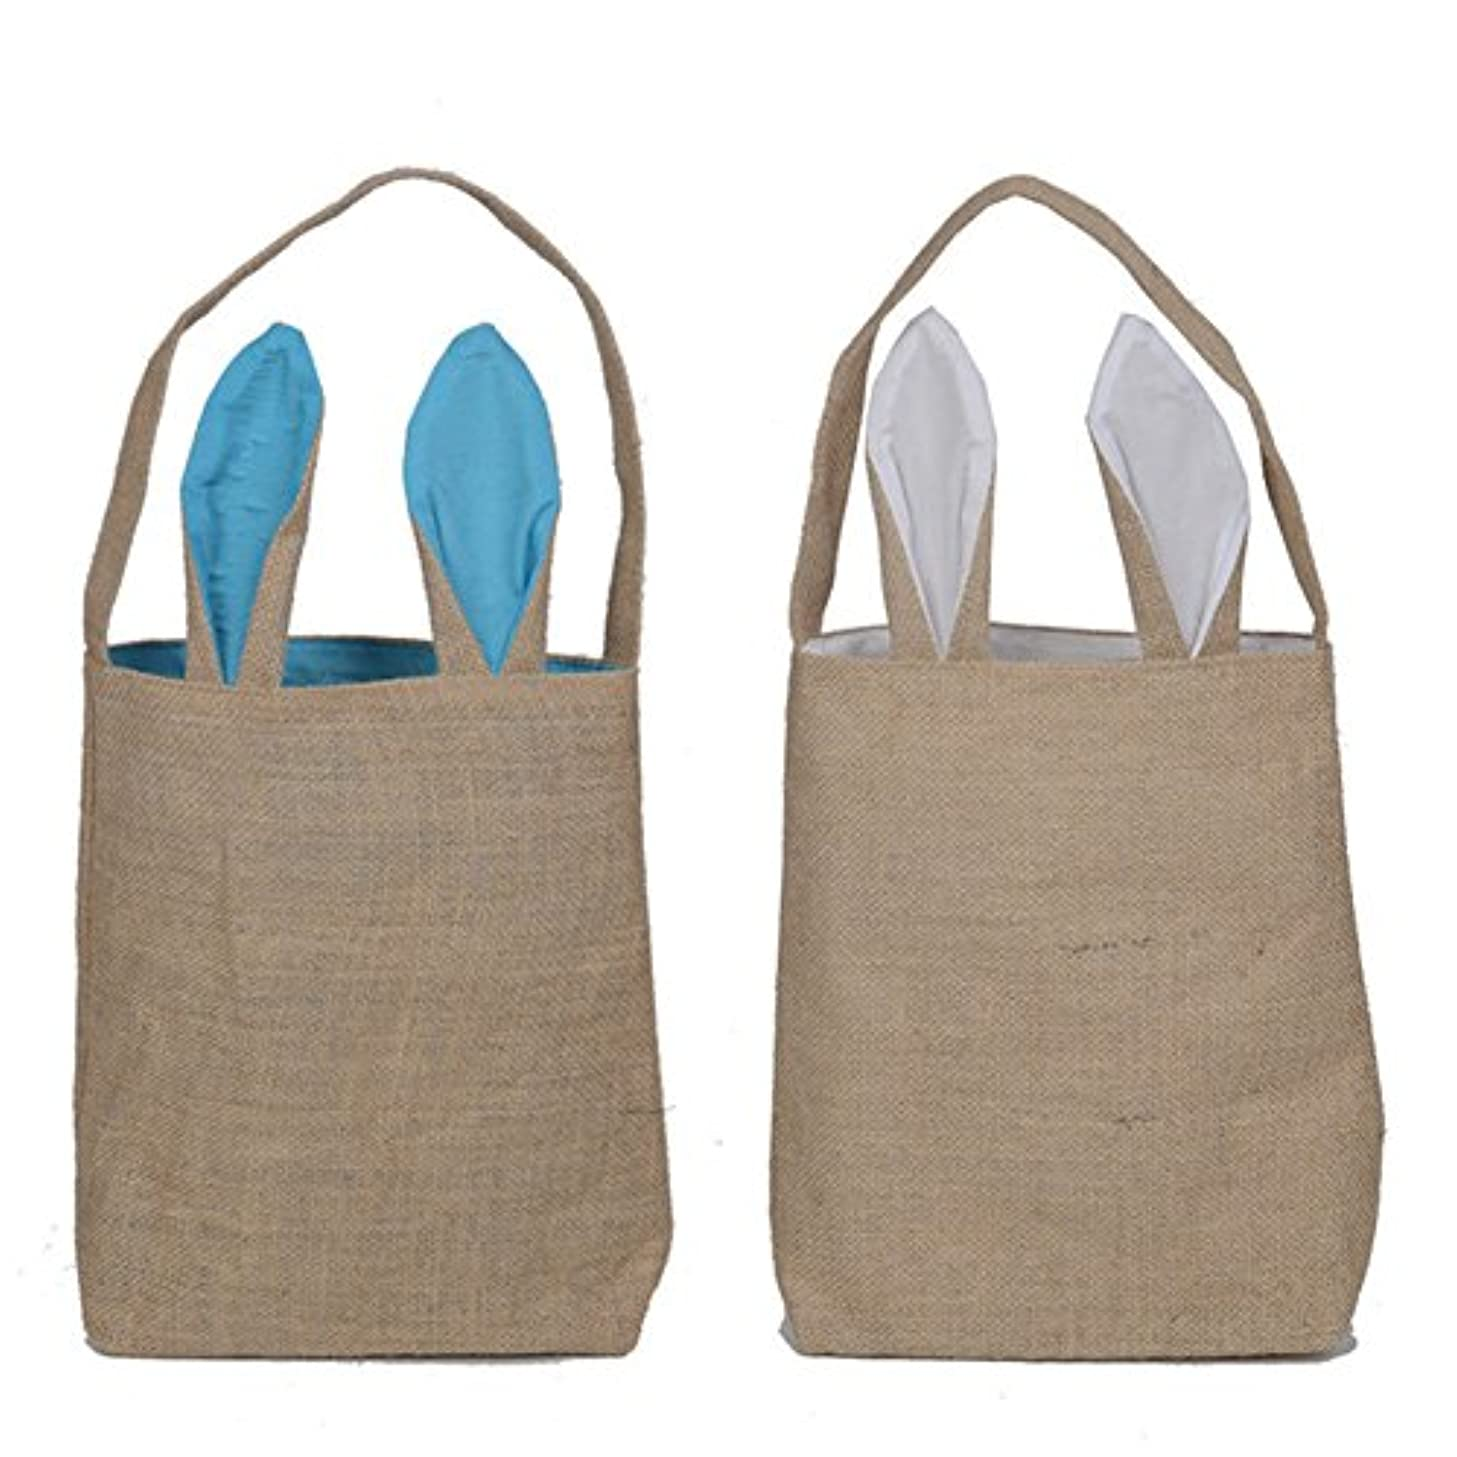 2 Pack Easter Gift Bag Dual Layer Bunny Ears Design Jute Cloth Bag for Party (Blue,White) by Loves Town